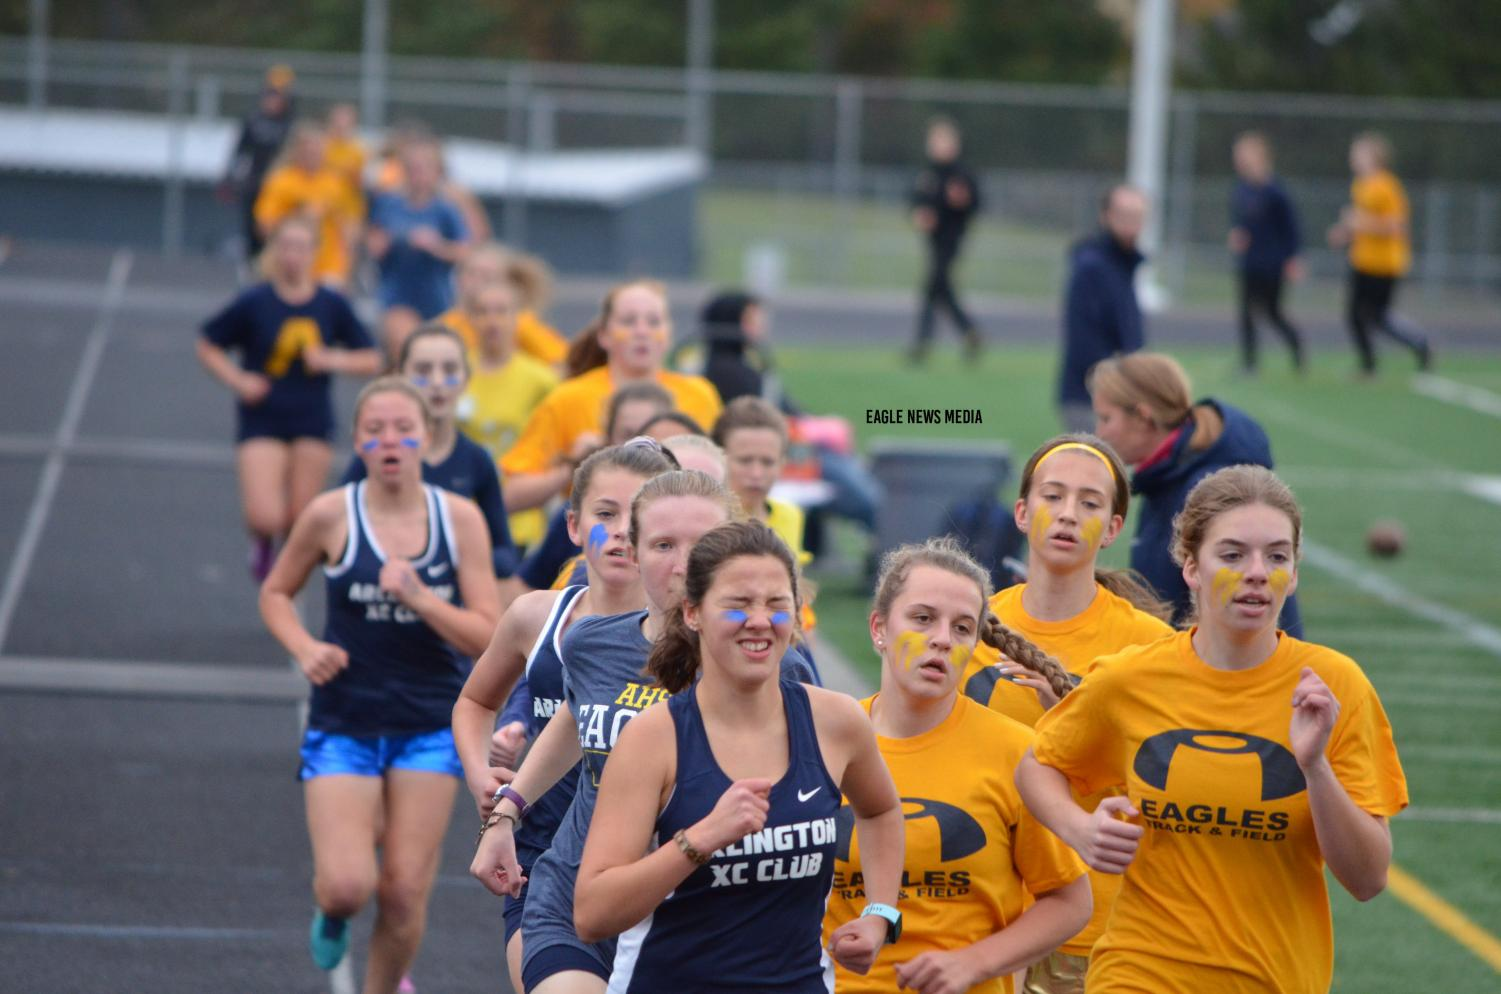 Wrapping up the Cross Country Season